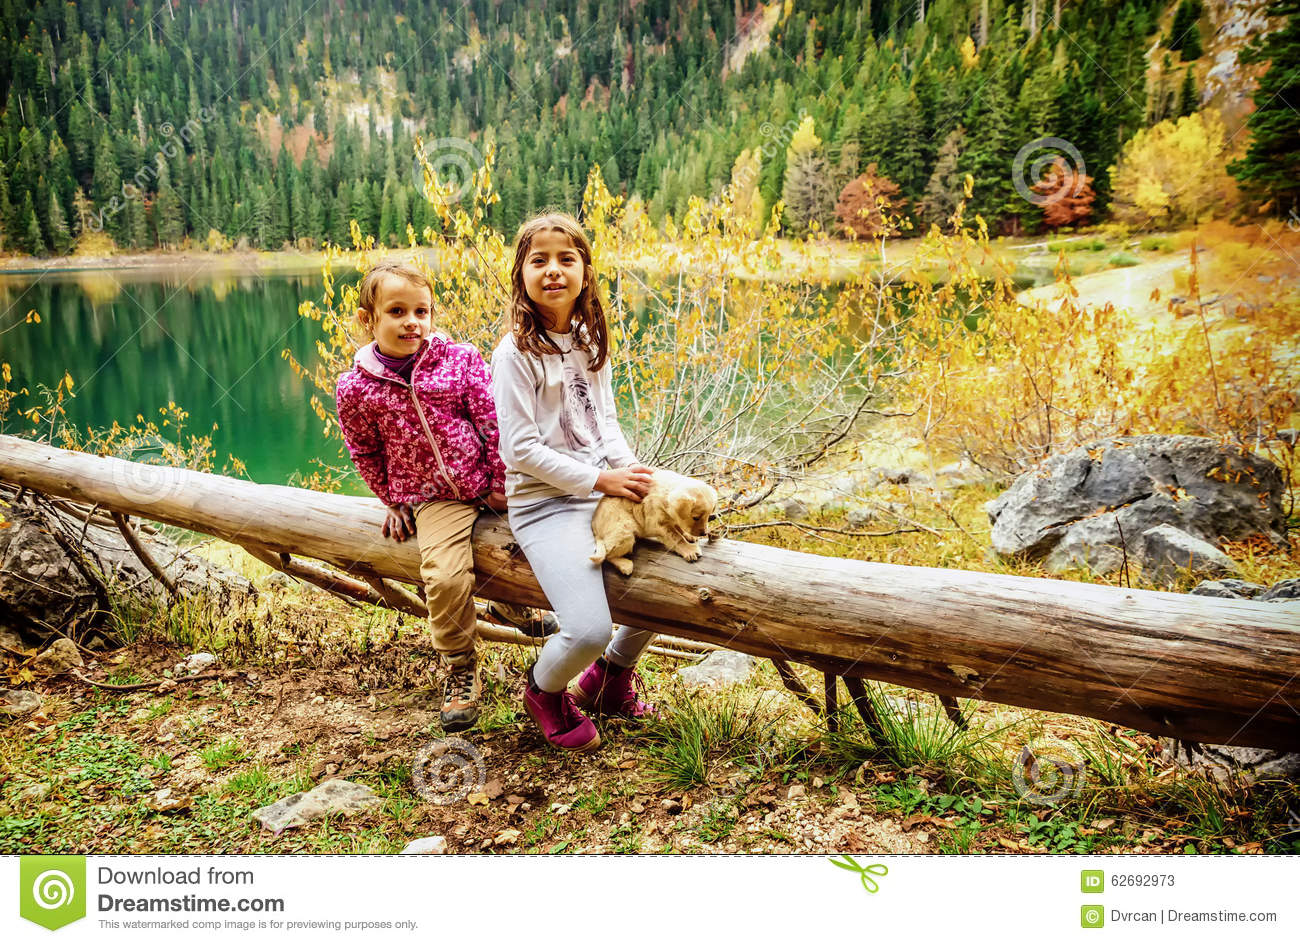 national park black girls personals The redwood national and state parks and prairie creek redwoods state parks (dating from the 1920s redwood national park headquarters is located in crescent.